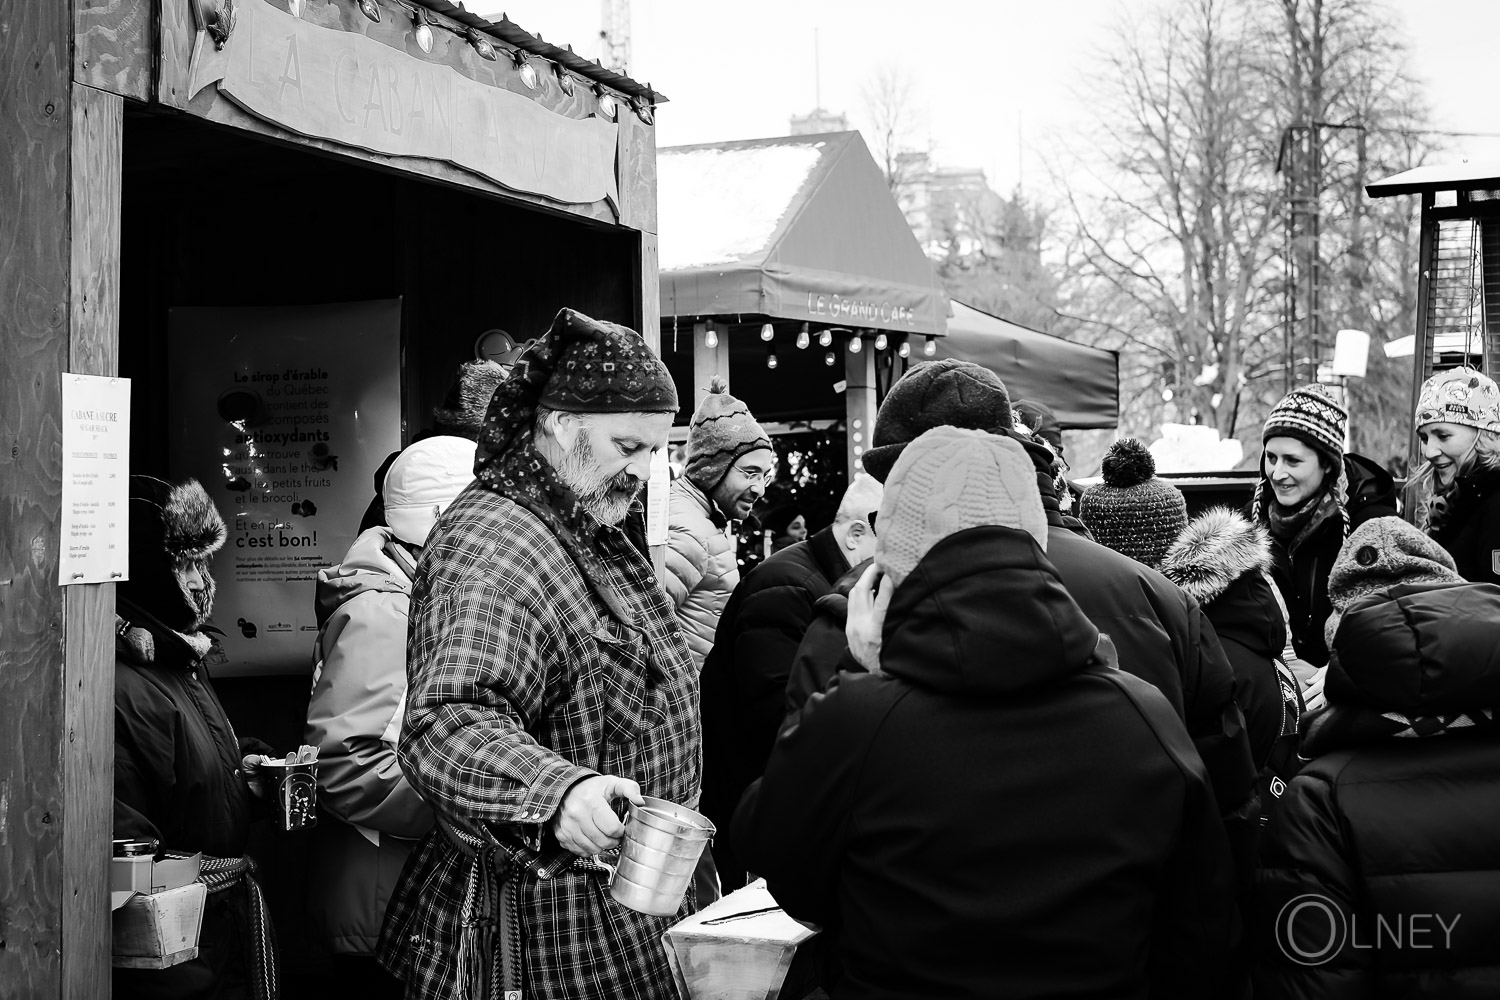 Maple syrup carnaval québec city